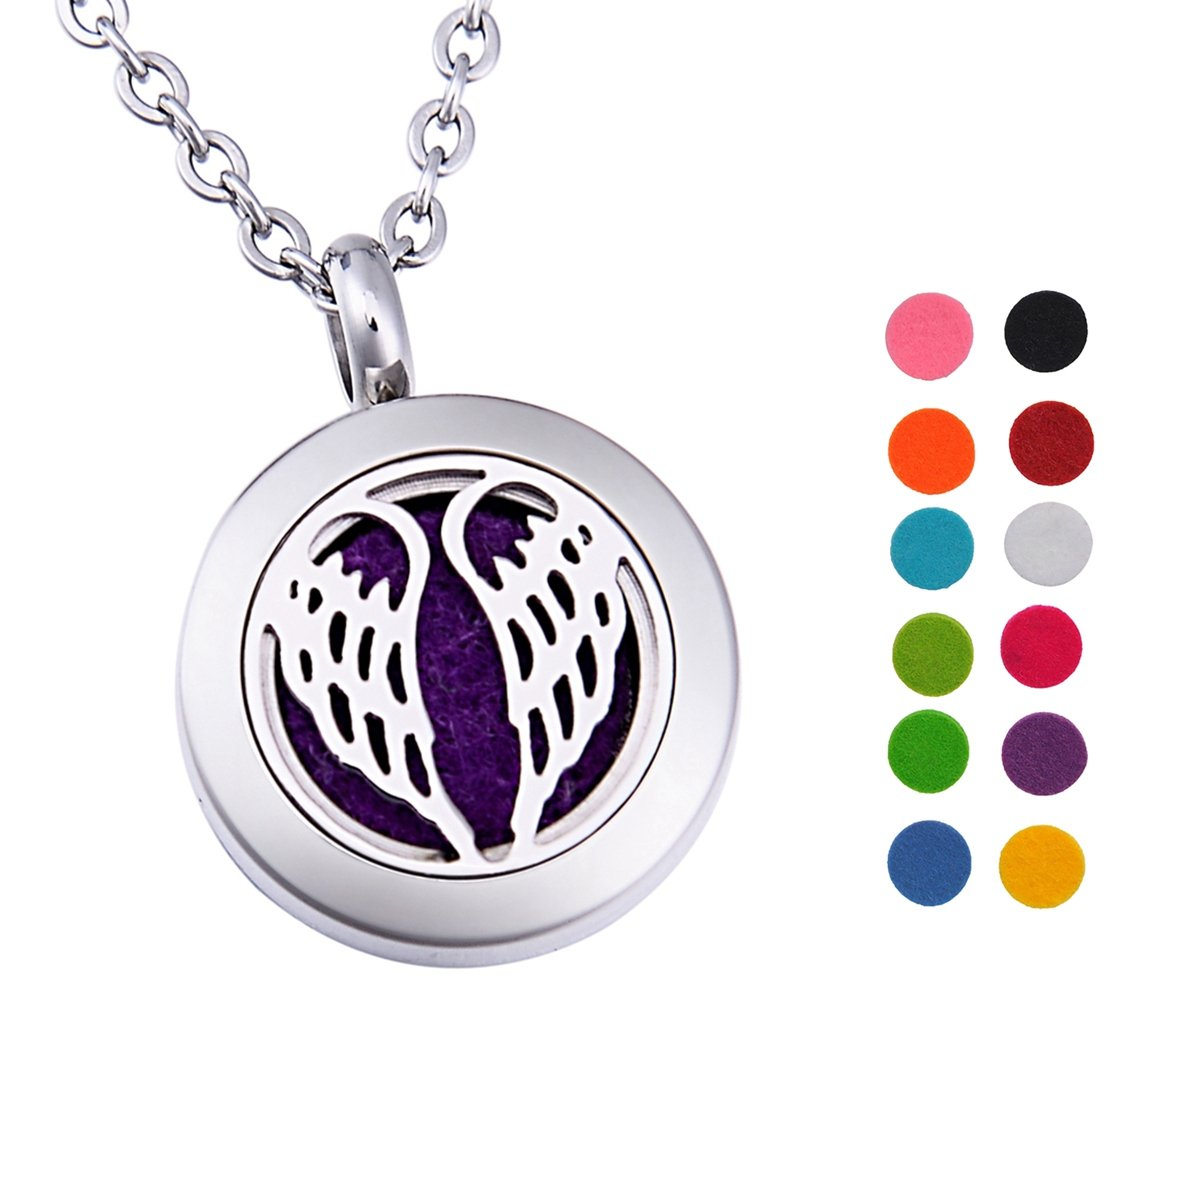 Personalized Birthstone Essential Oil Diffuser Necklace Angel Wing Locket Pendant Jewelry Silver Tone and Black-plated Supreme glory SGto-B268905